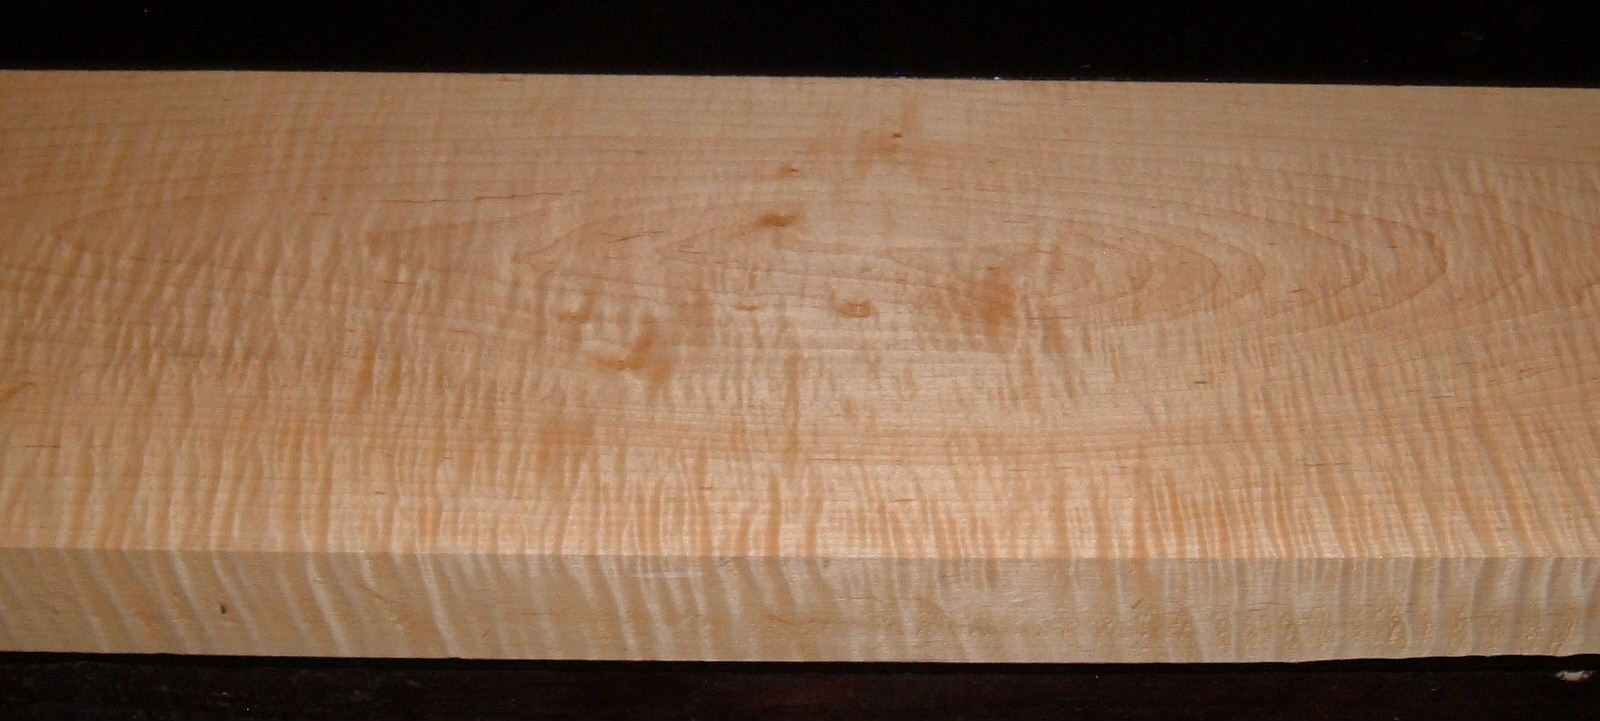 M2003-243, 1-13/16x7-3/8x35, Figure Curly Tiger Maple